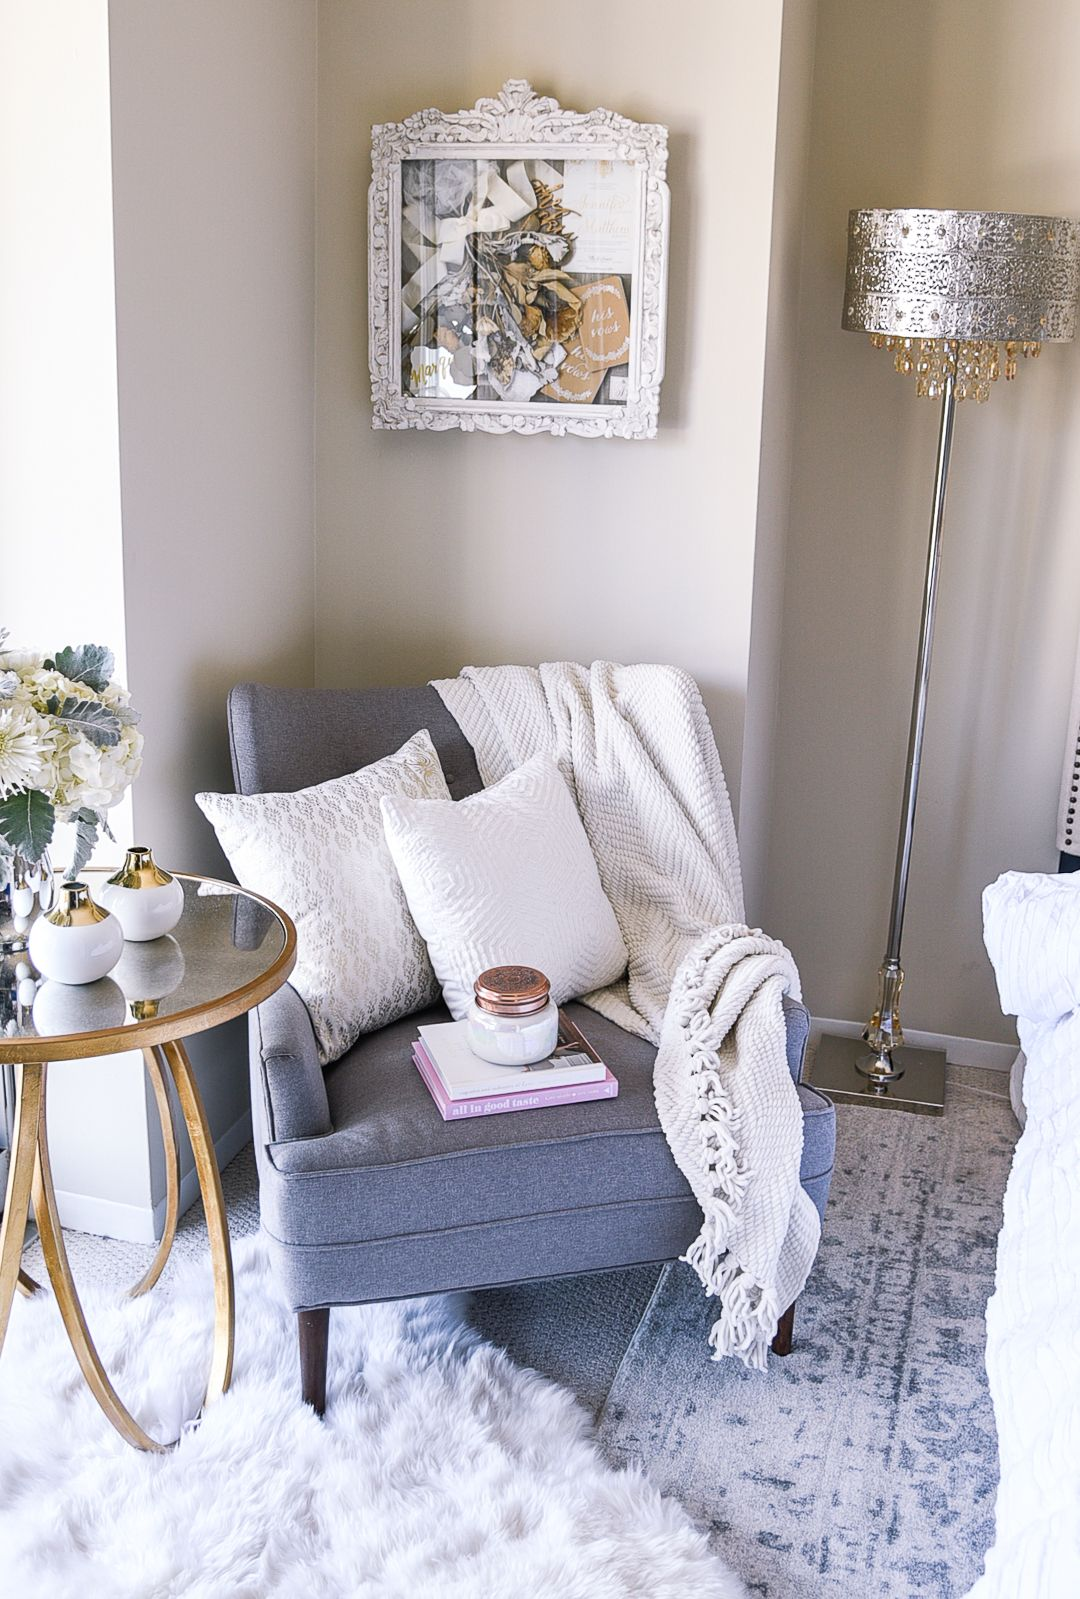 How To Style A Cozy Corner Home Decor Bedroom Home Decor Room